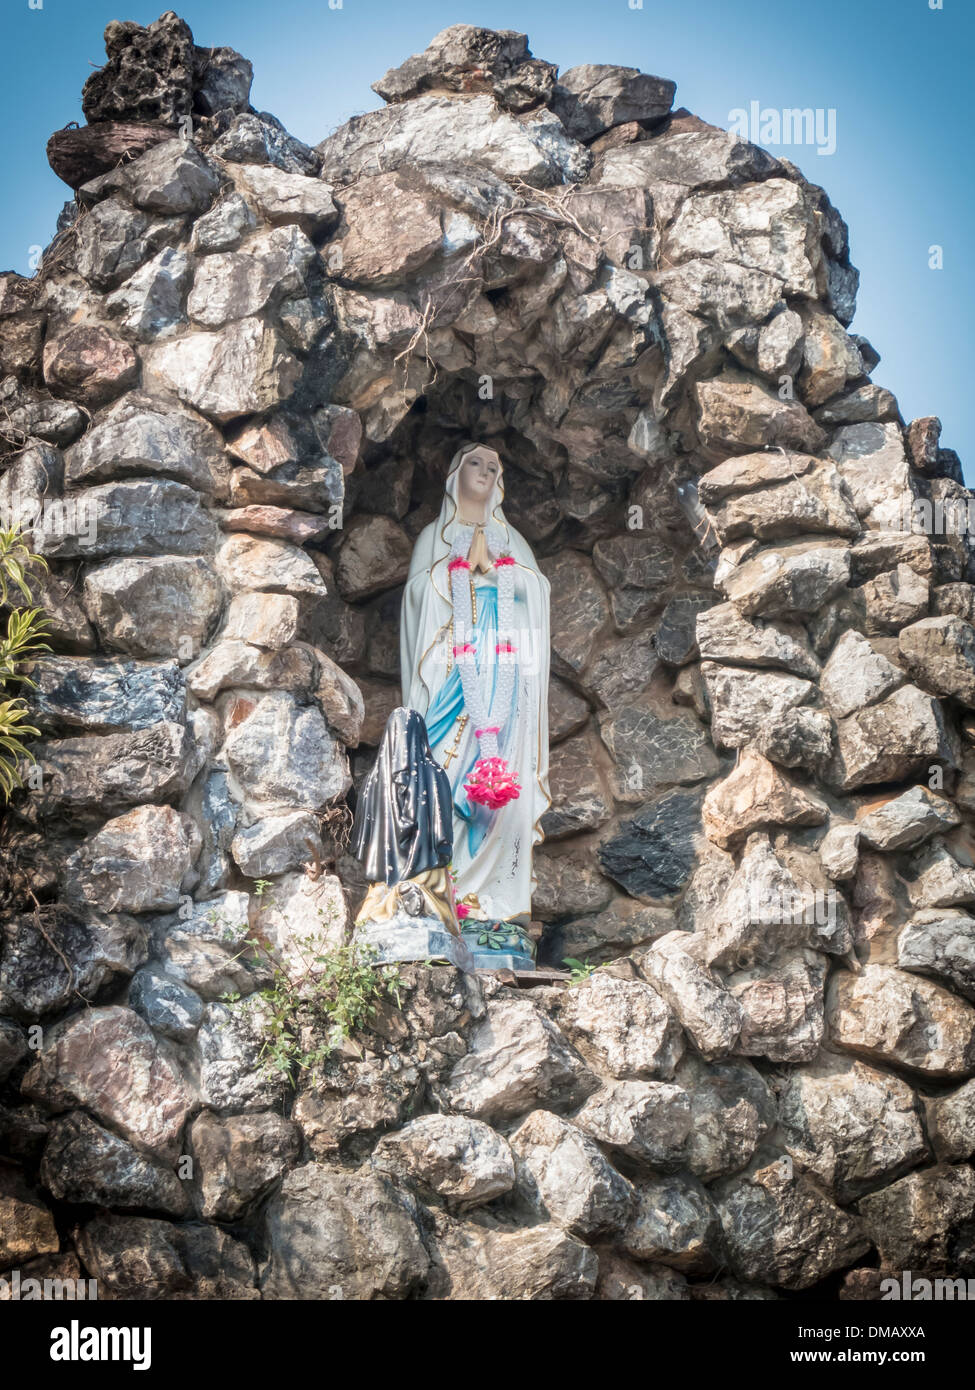 Little Virgin Mary statue in Roman Catholic Church place belief of community Chanthaburi, Thailand. - Stock Image